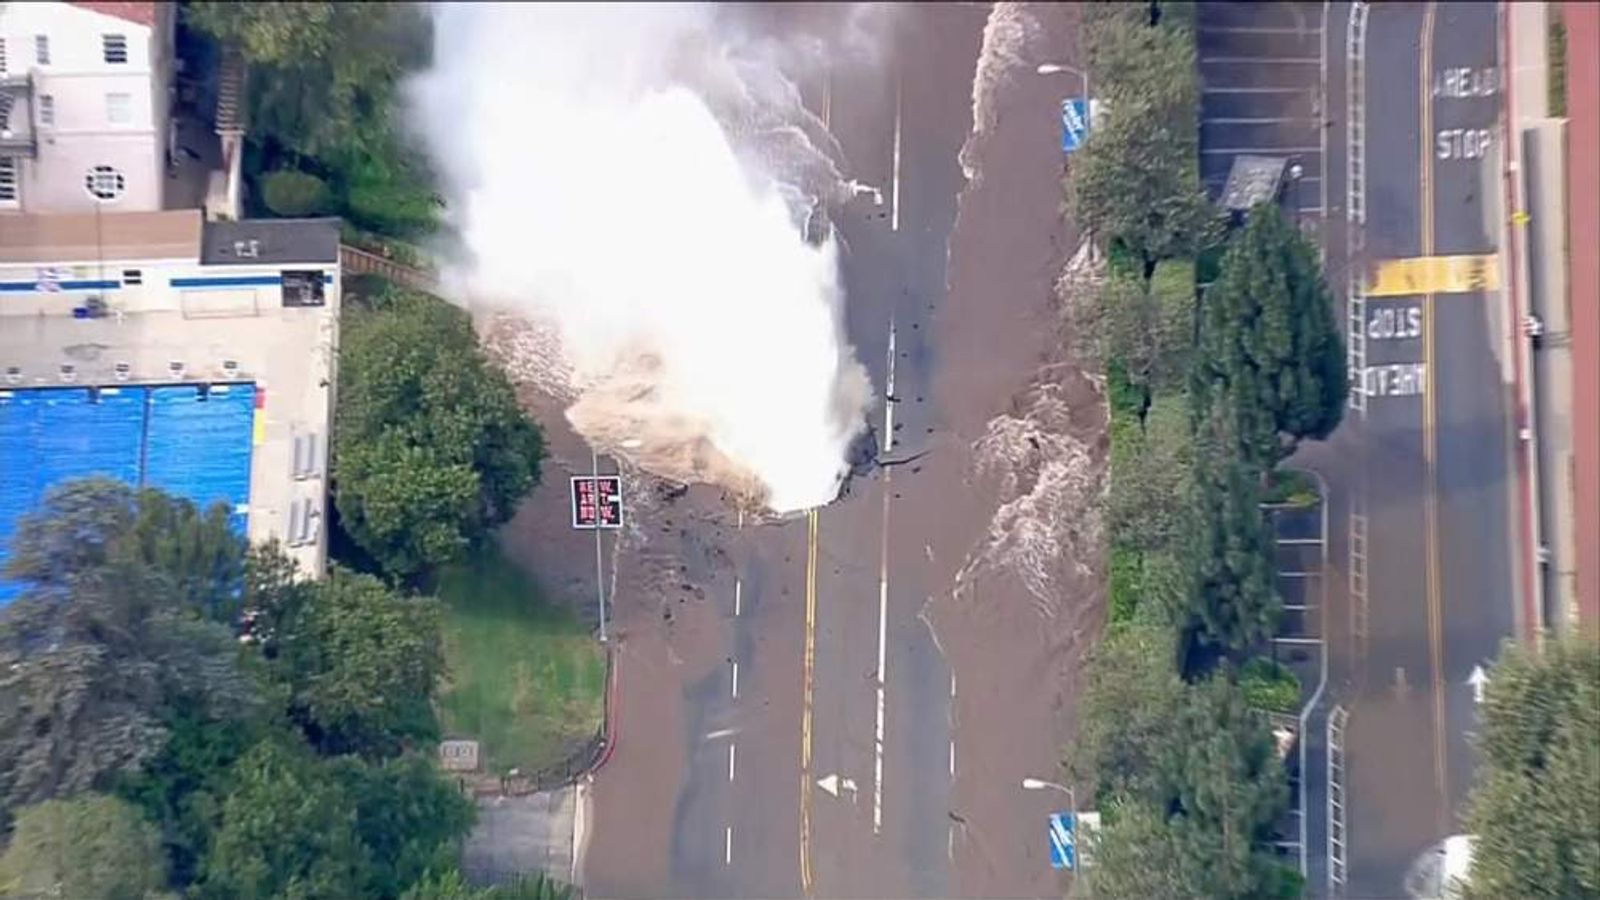 The burst main on Sunset Boulevard